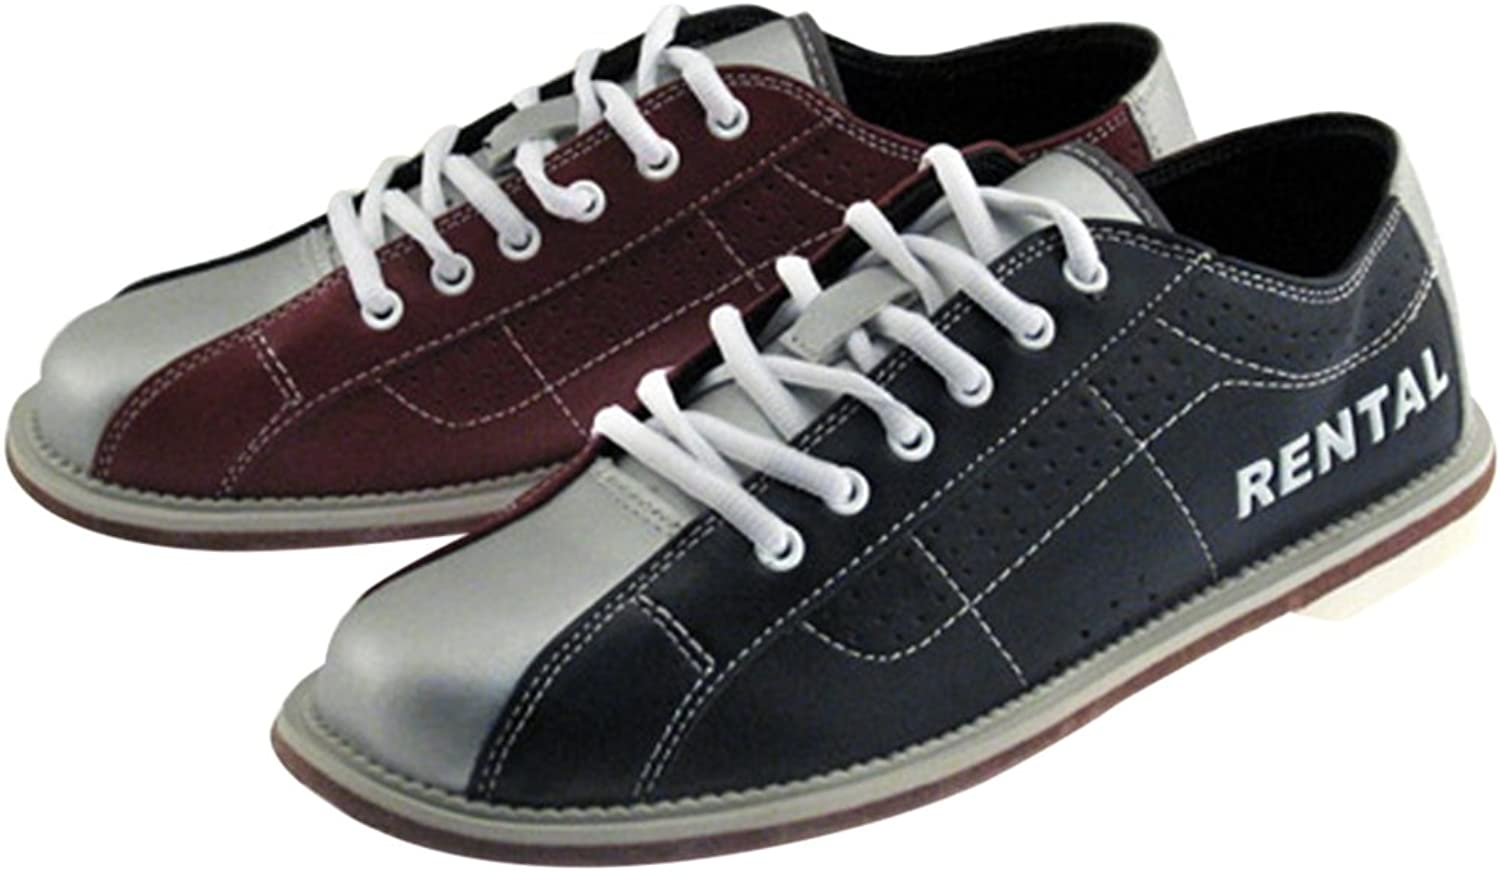 Bowlerstore Classic Men's Rental Bowling shoes, 10 1 2 US M, bluee Red Silver